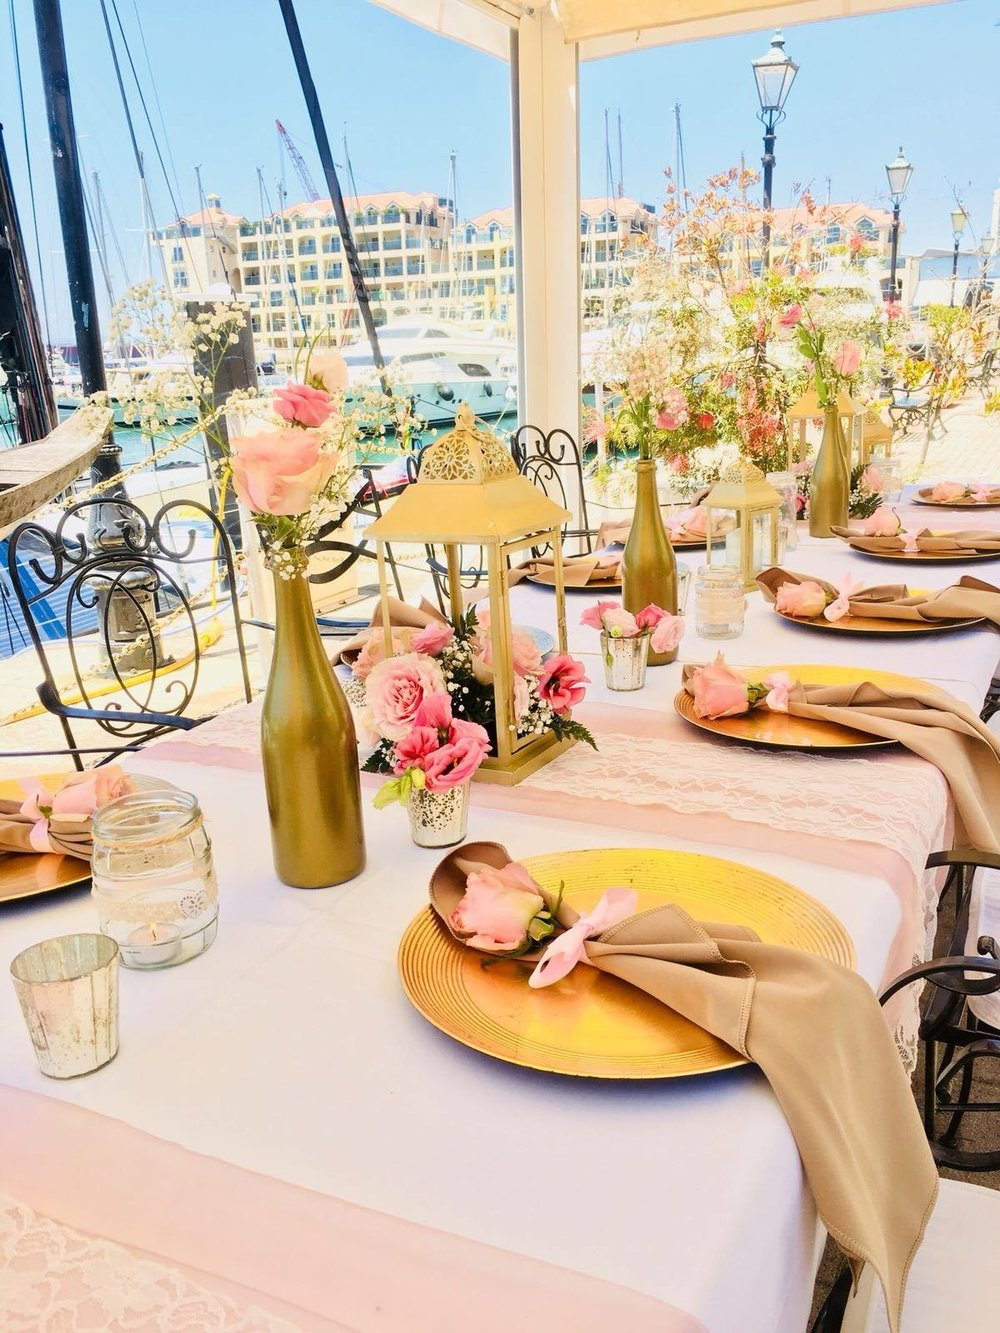 Need to Know   The restaurant caters for all diet requirements & there are multiple menus to chose from  They can host a party of 8 in the small area and a party of 50 guests in the large area.  For dining they can hold 80 guests in both the conservatory and dining area.